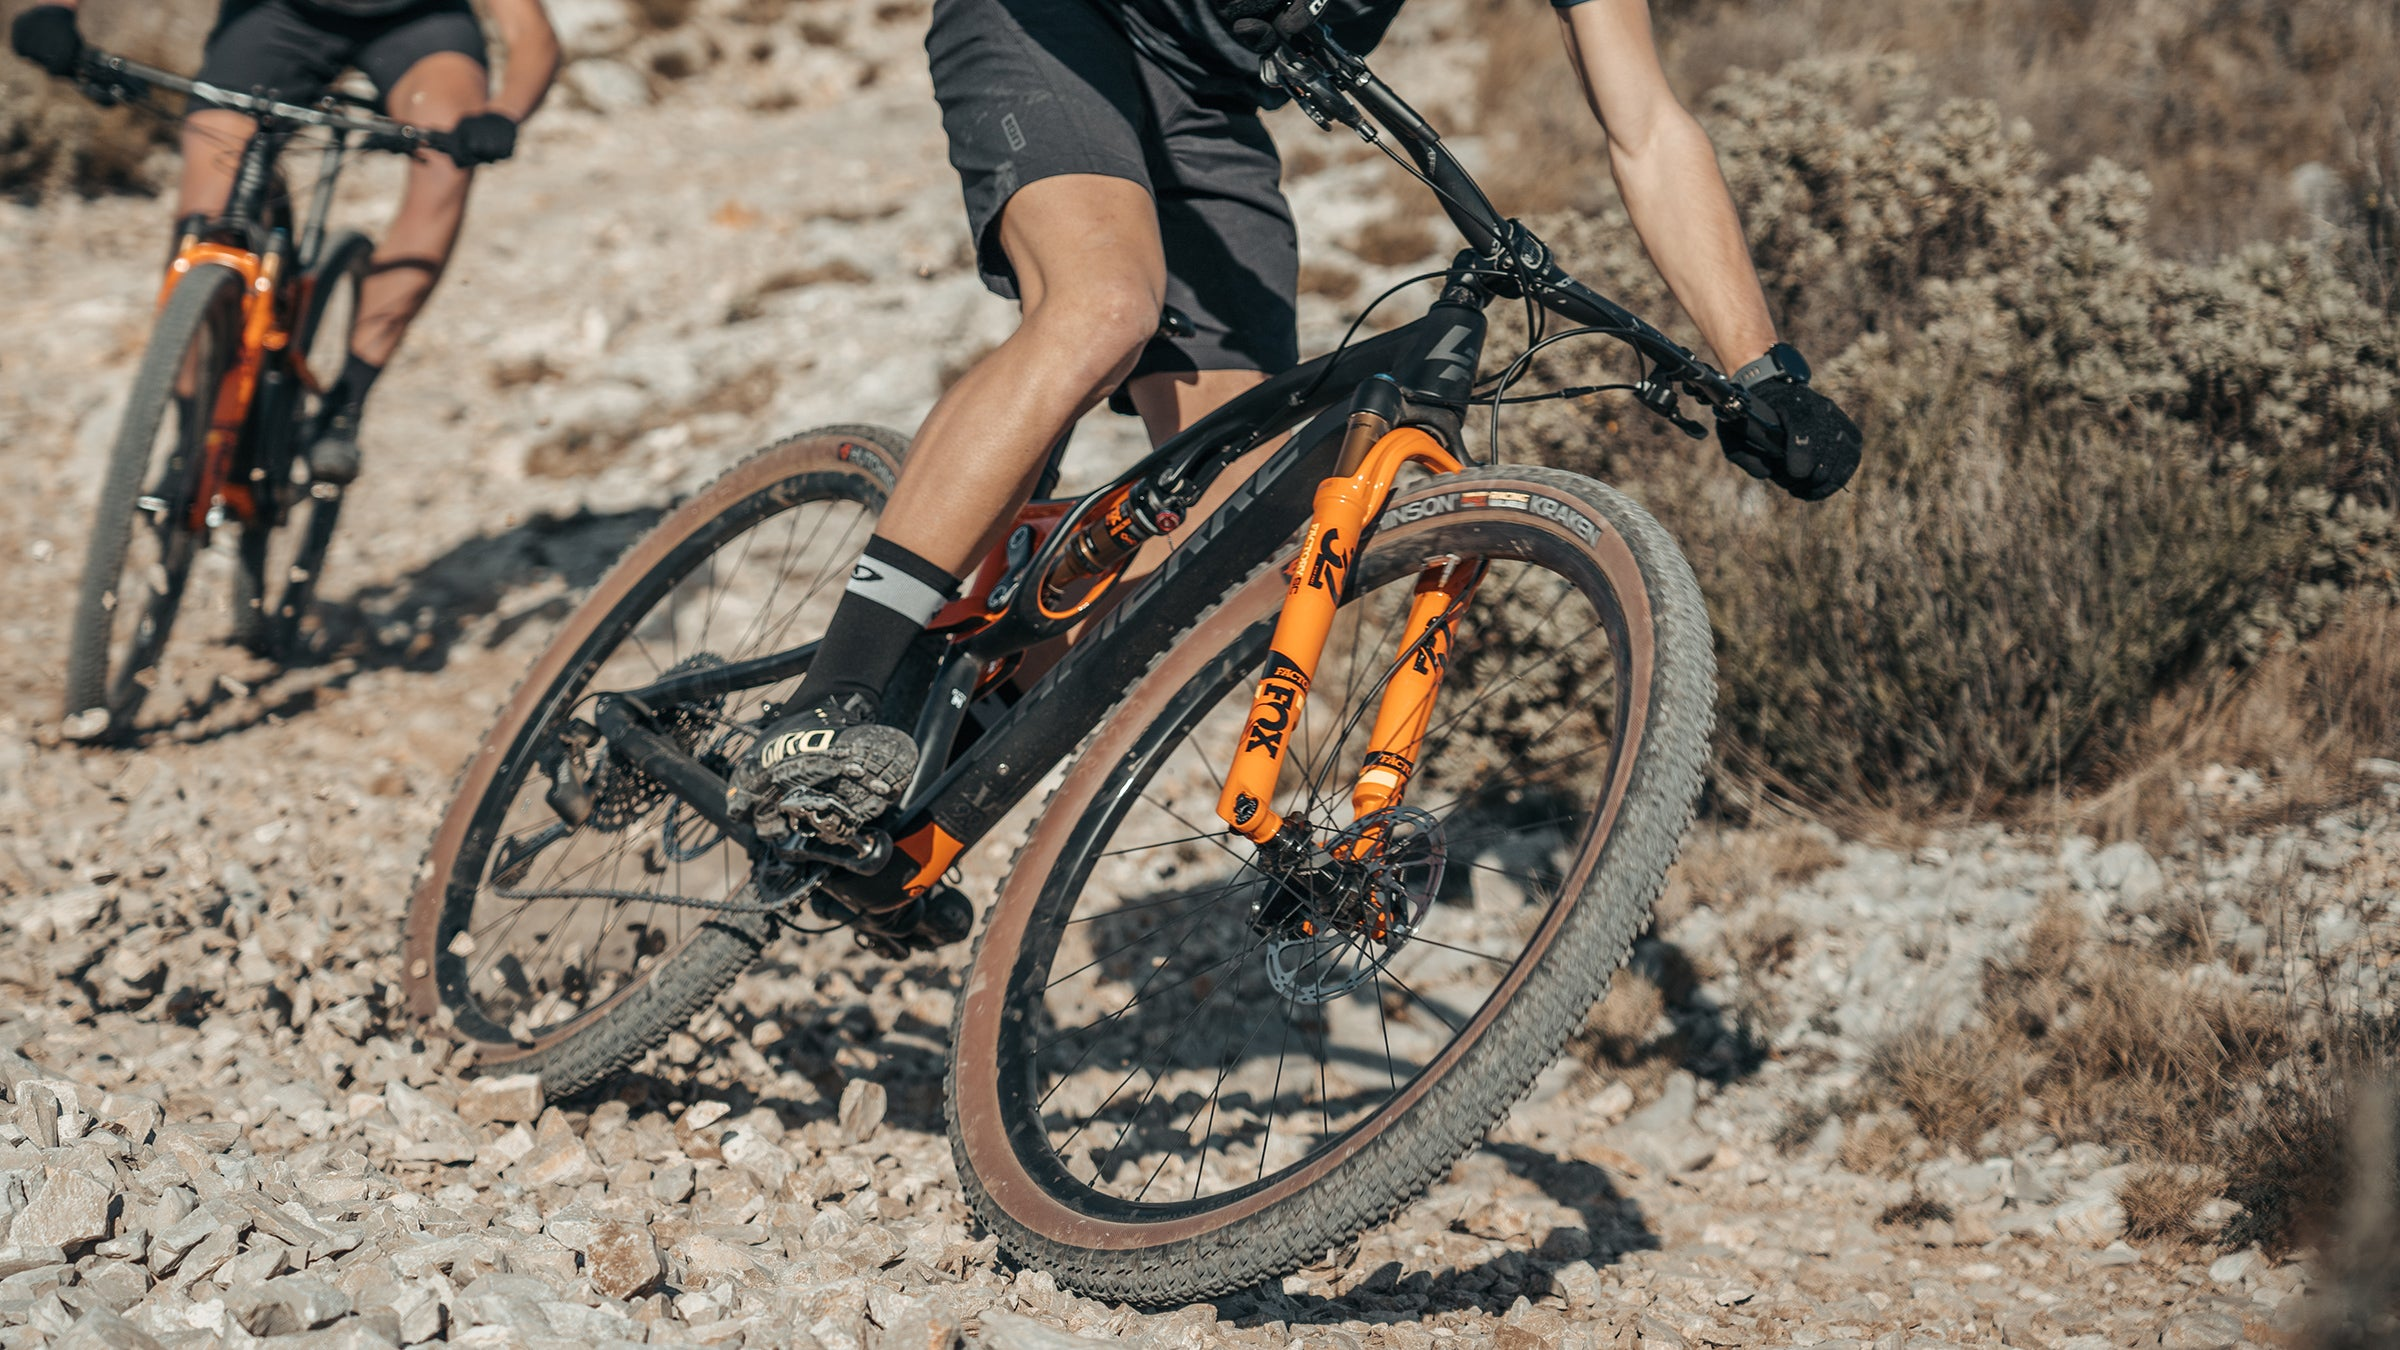 Hutchinson Tires Kraken delivers traction while cornering